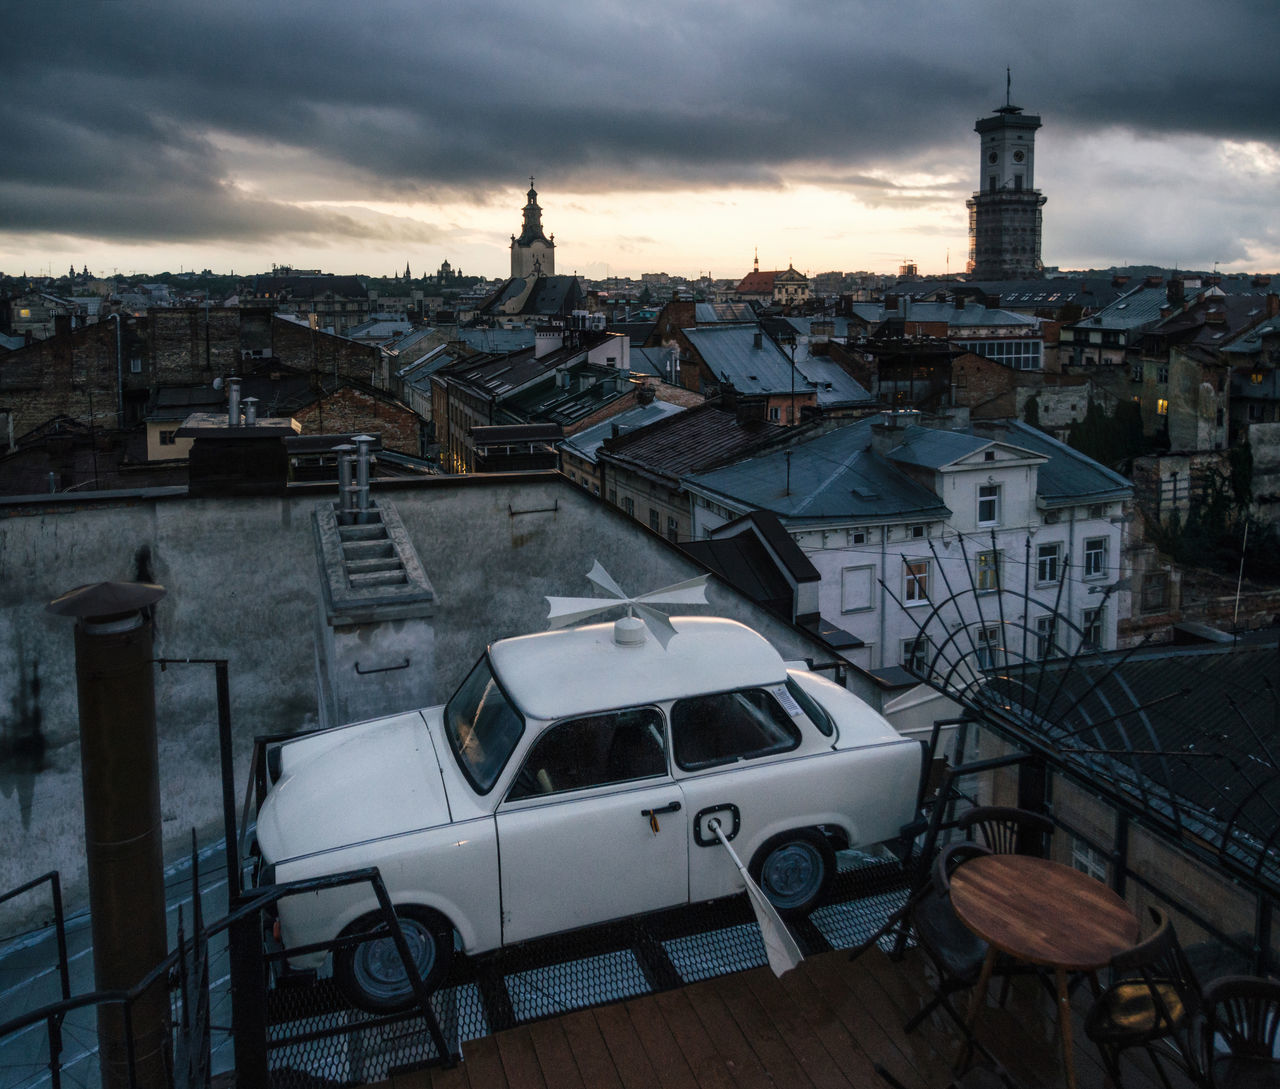 Trabant car parked on the roof a historic building House of Legends in the dusk. Landmark of Lviv, Ukraine. Architecture Building Exterior Built Structure Car City Cityscape Cloud - Sky Land Vehicle Lviv Mode Of Transport No People Outdoors Residential Building Roof Sky Sunset Town Trabant Transportation Ukraine